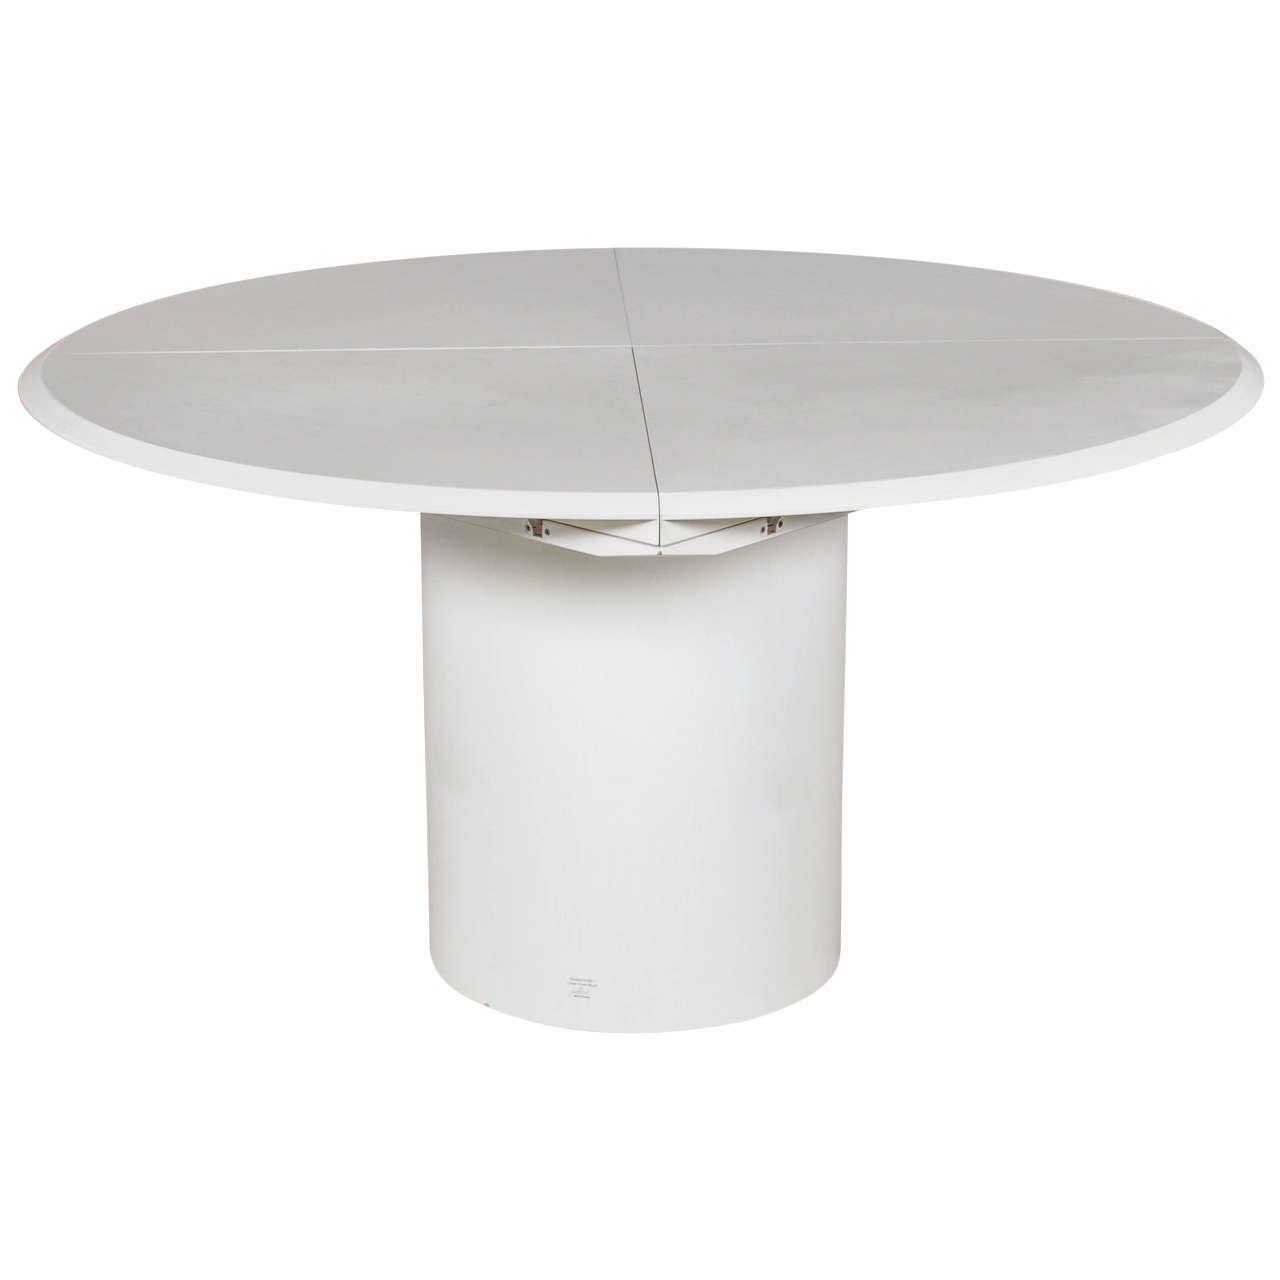 Schon Multifunctional Round, Square And Oval Dining Table For Rosenthal  Einrichtung For Sale